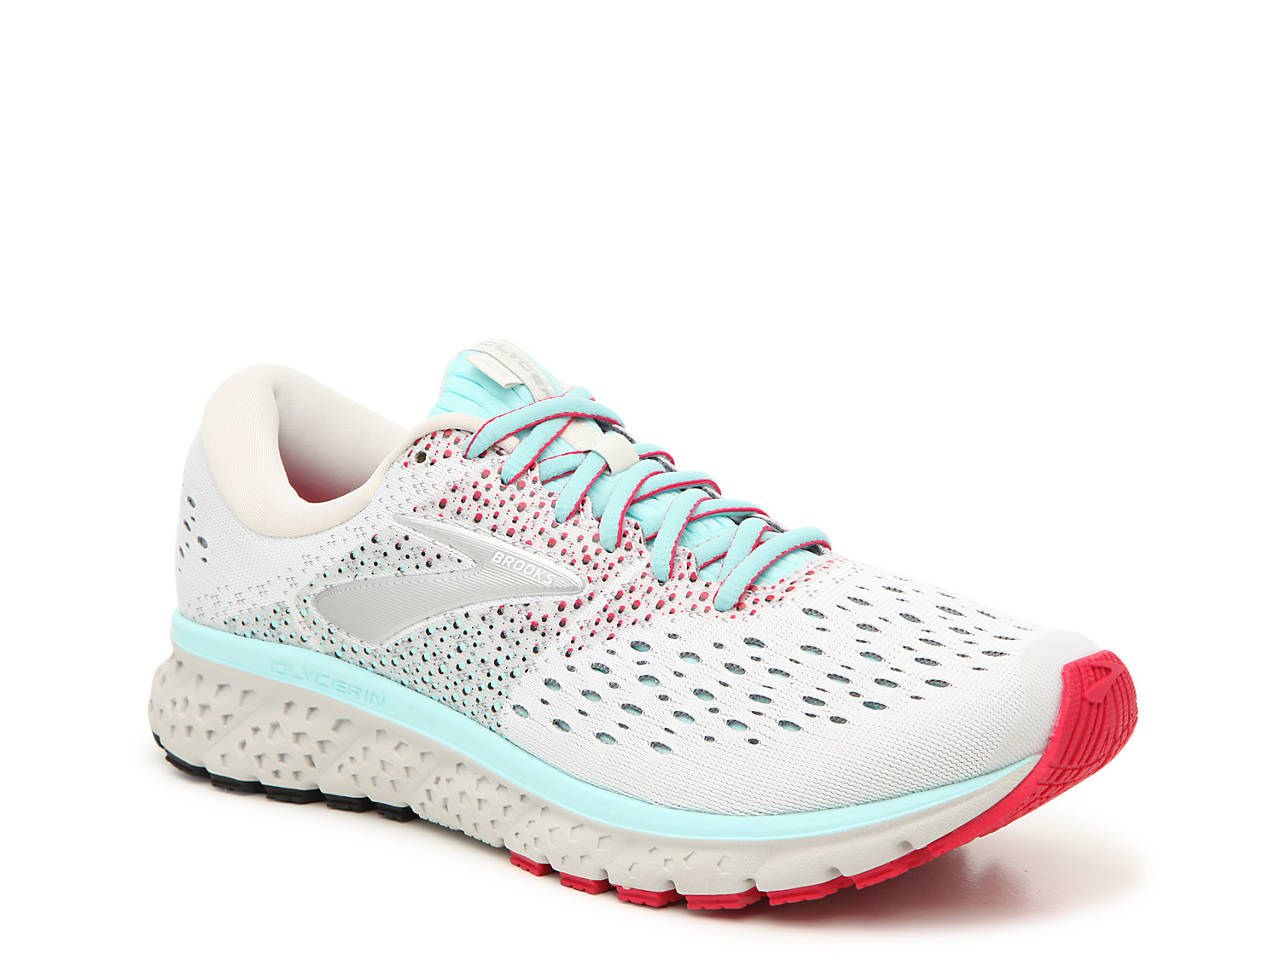 5a1d34b47600a Brooks Glycerin 16 Running Shoe - Women s Women s Shoes